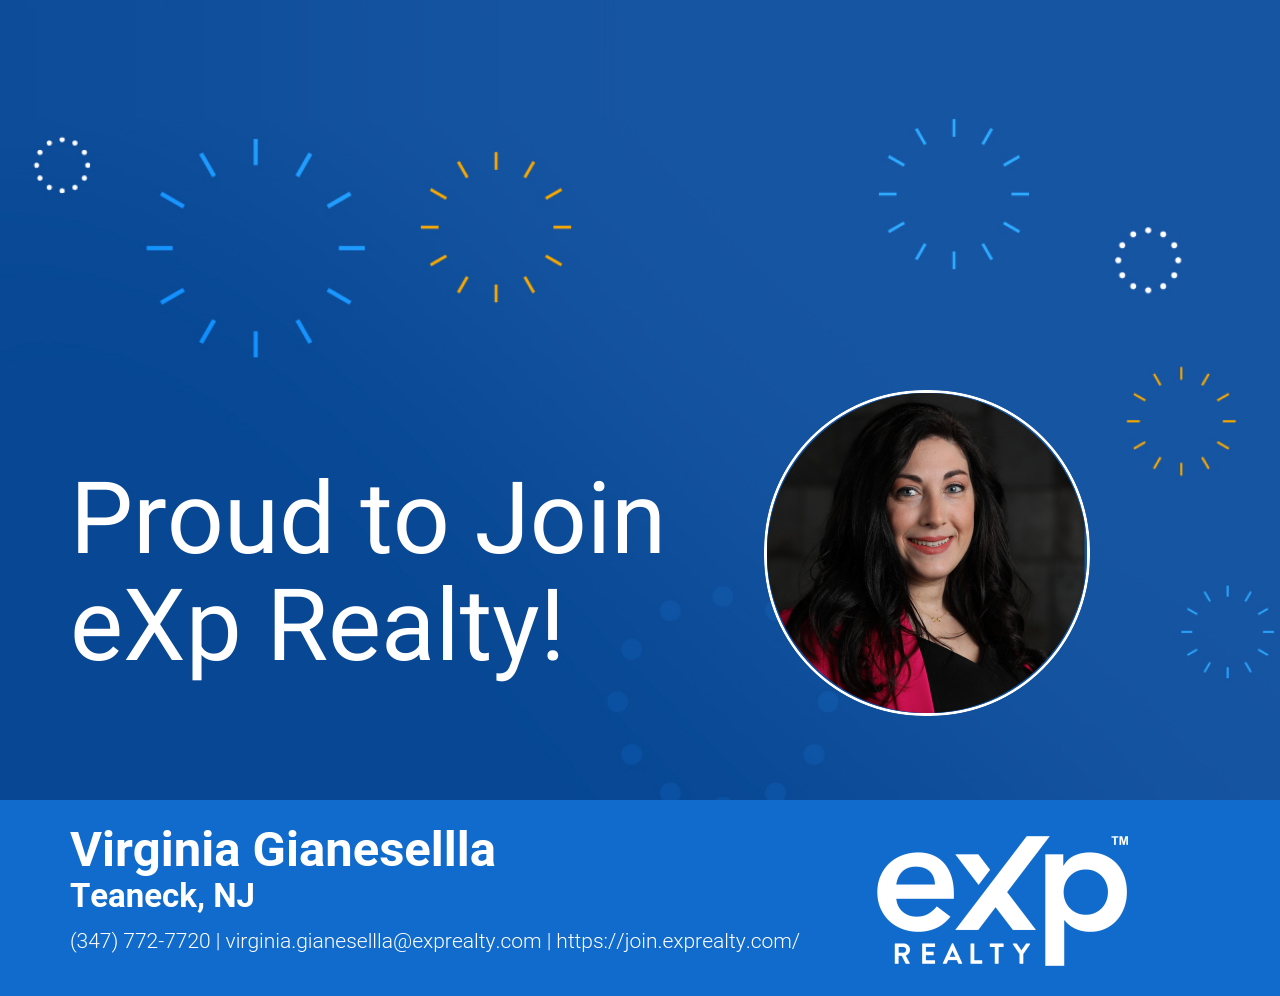 eXp Realty Welcomes Virginia Gianesellla!